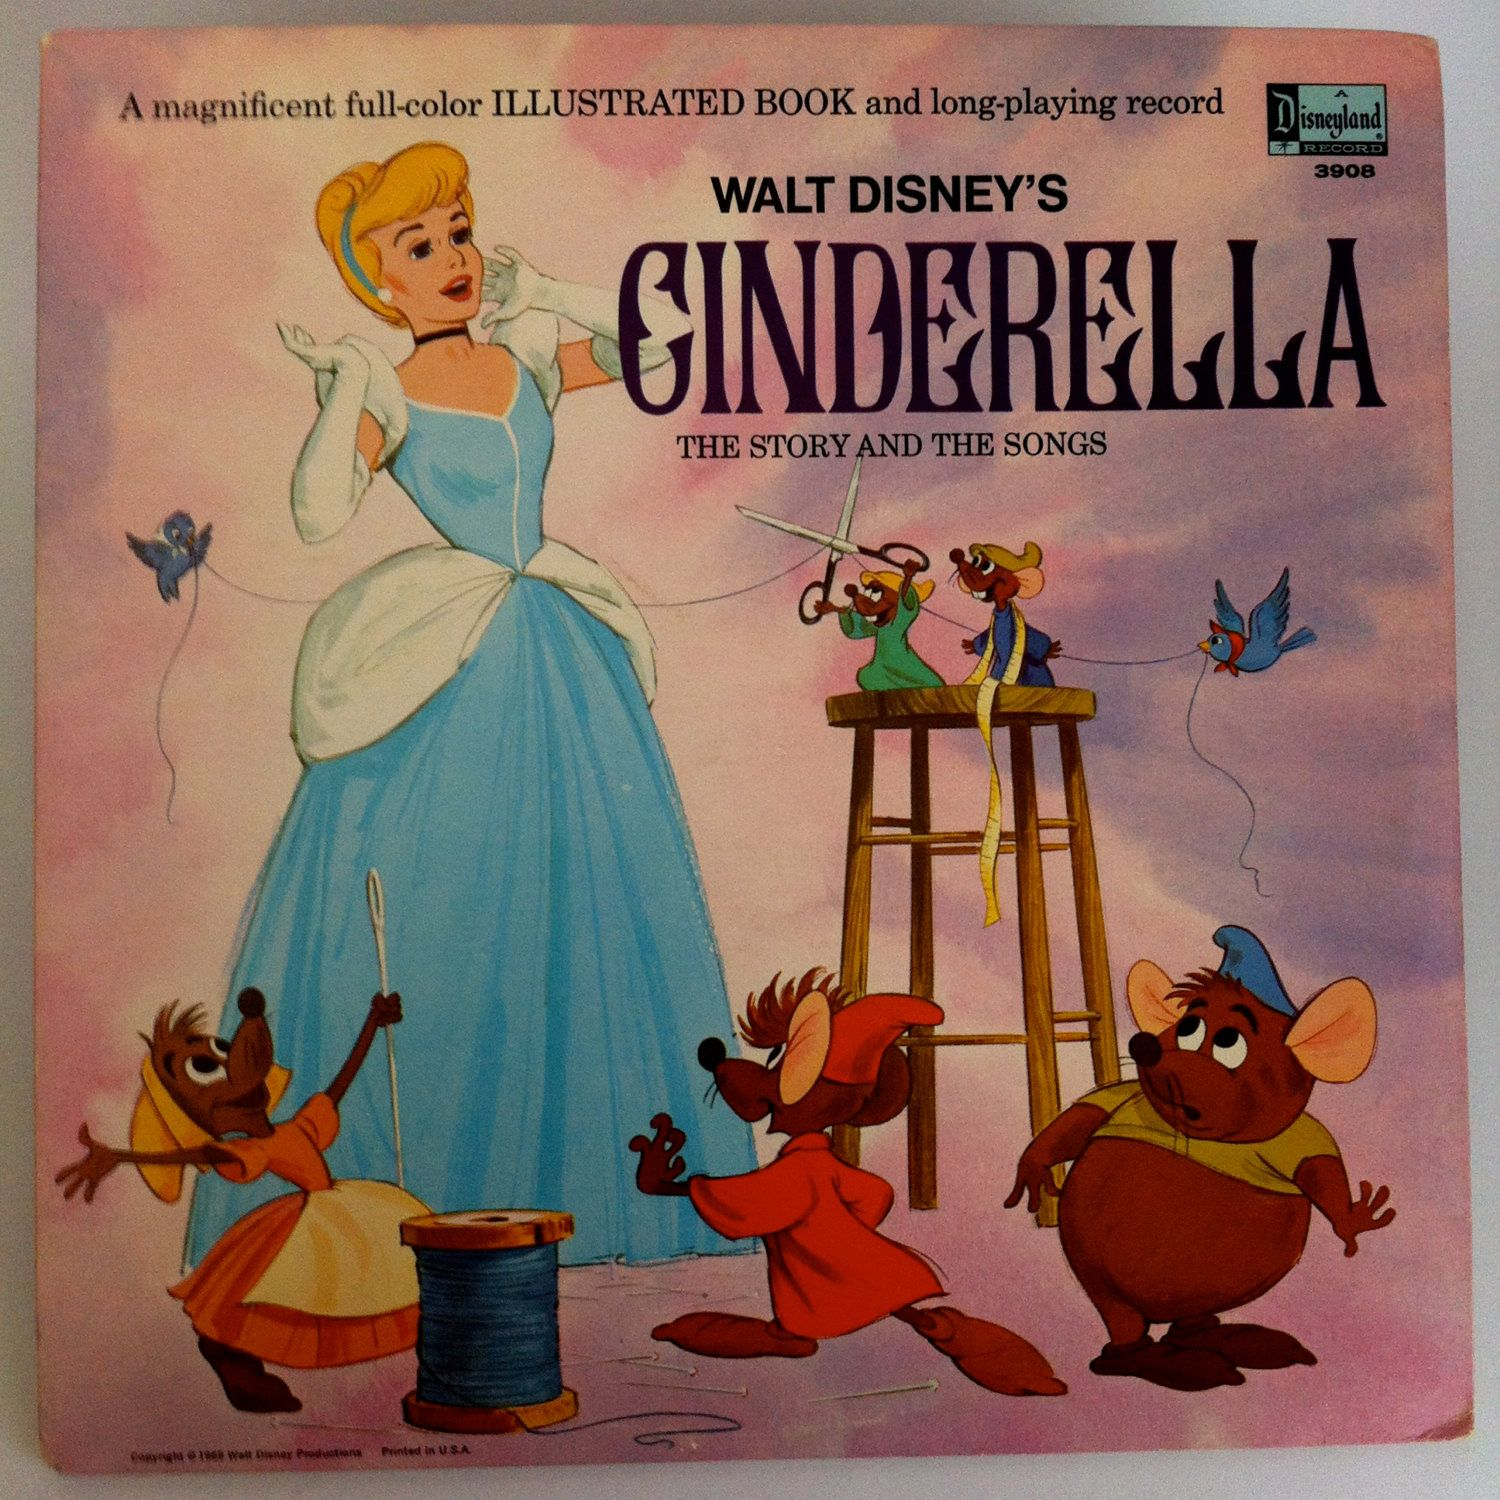 Illustrated Book Cover Guitar : Walt disney s cinderella story and songs vinyl record lp